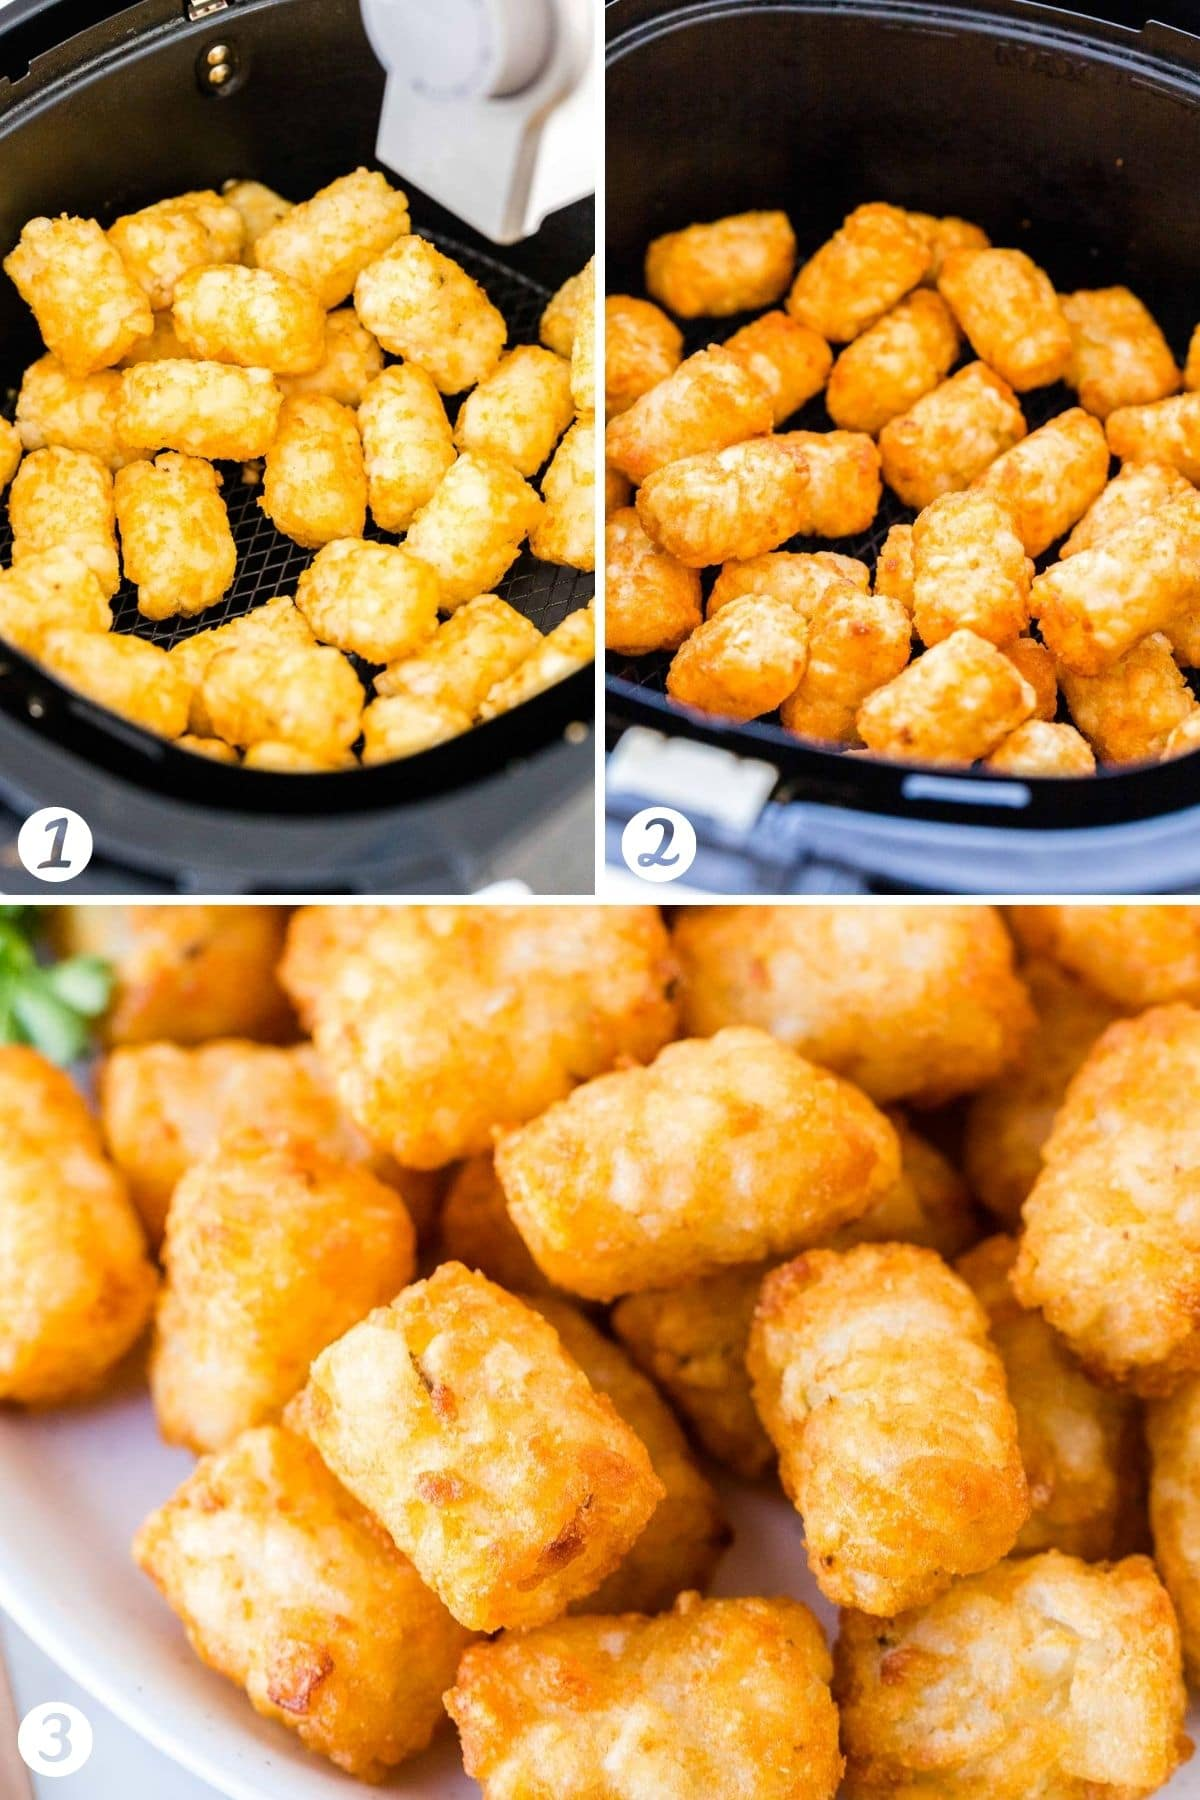 Steps for making frozen tater tots in the Air Fryer